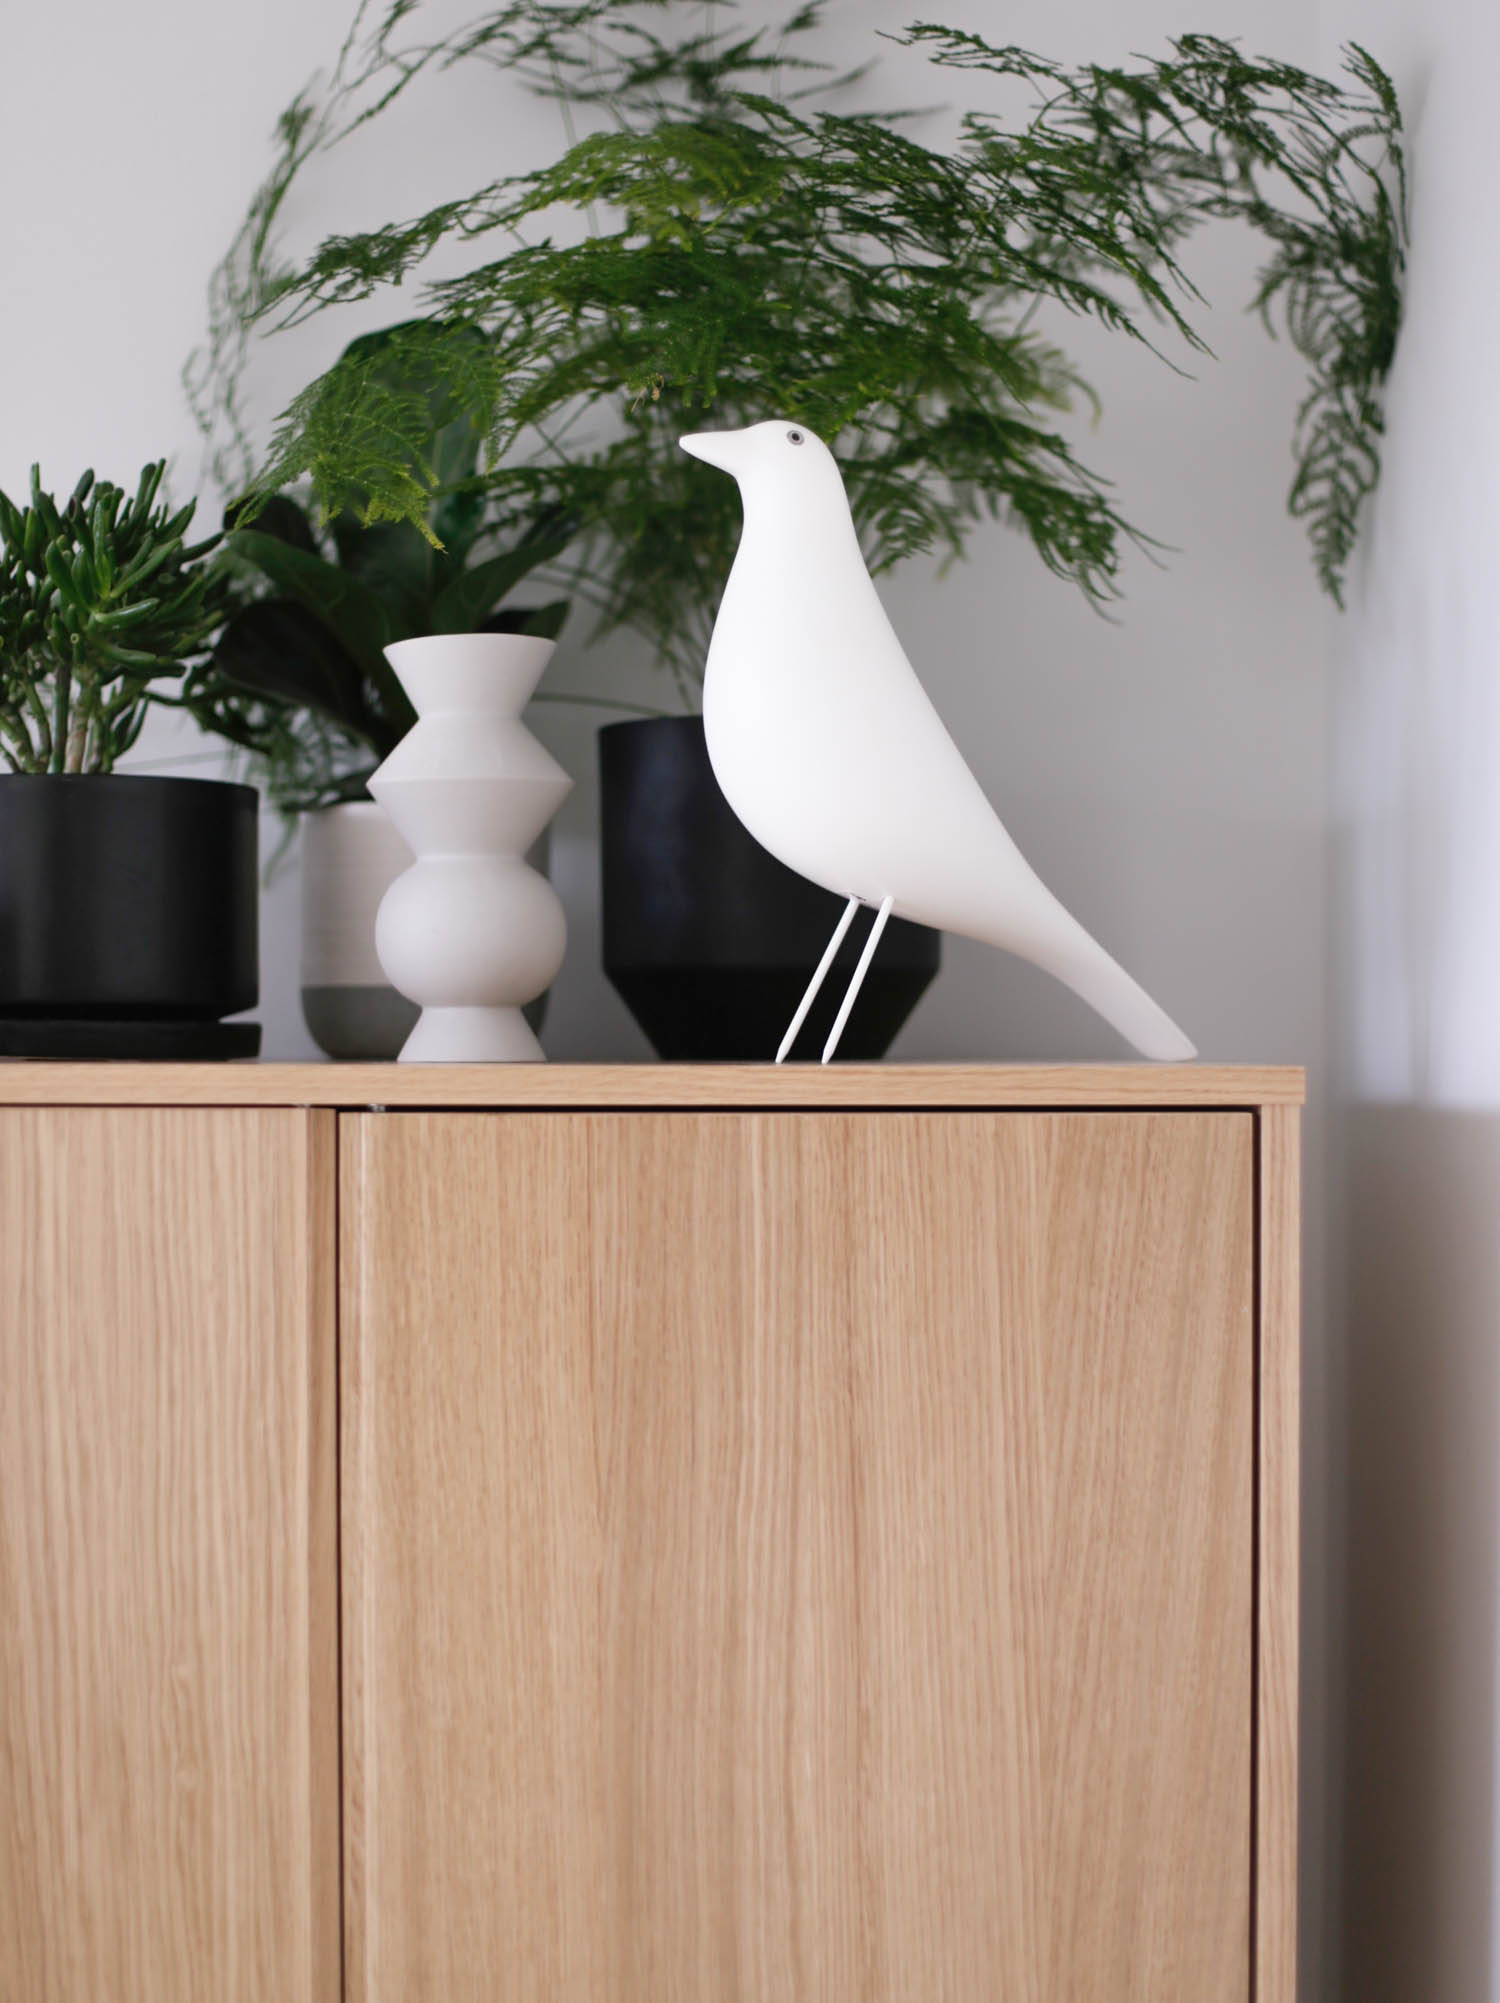 Plants and white Vitra house bird